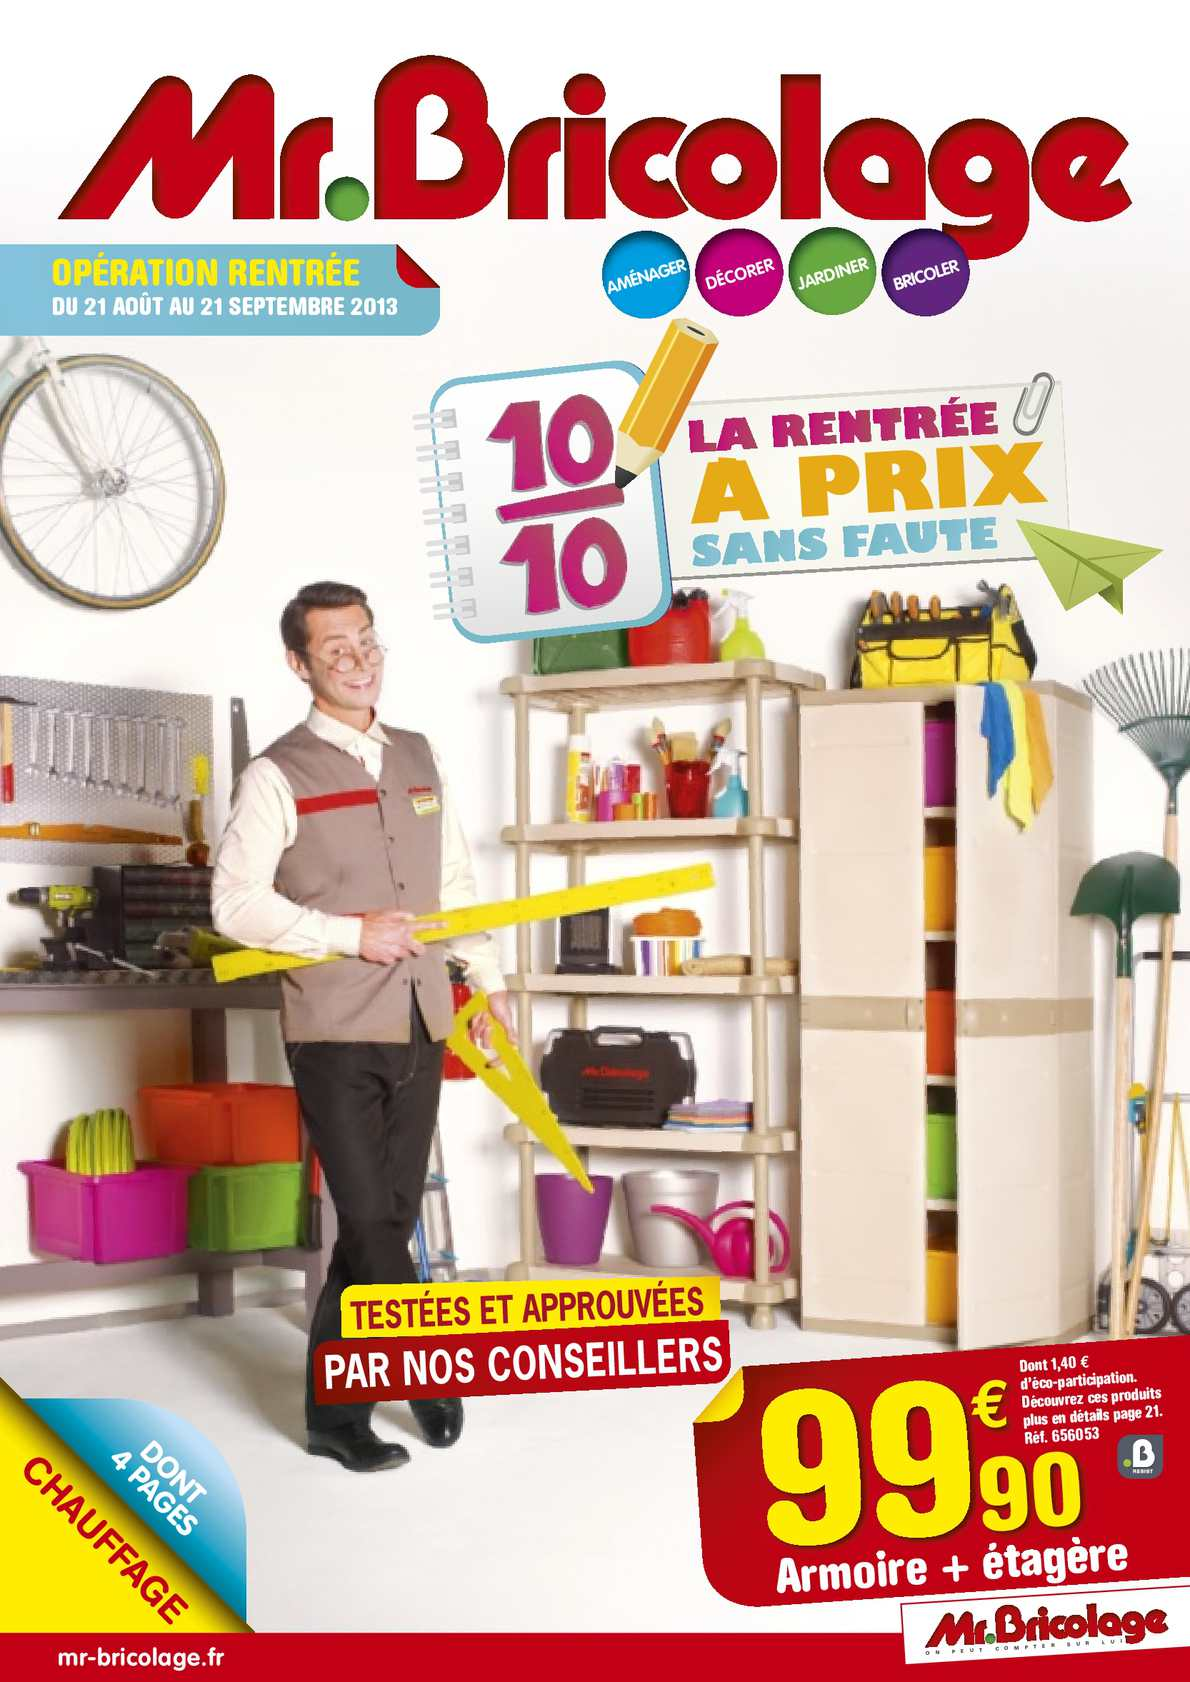 Conforama Dole Monsieur Bricolage Lons Le Saunier Trendy Plan With